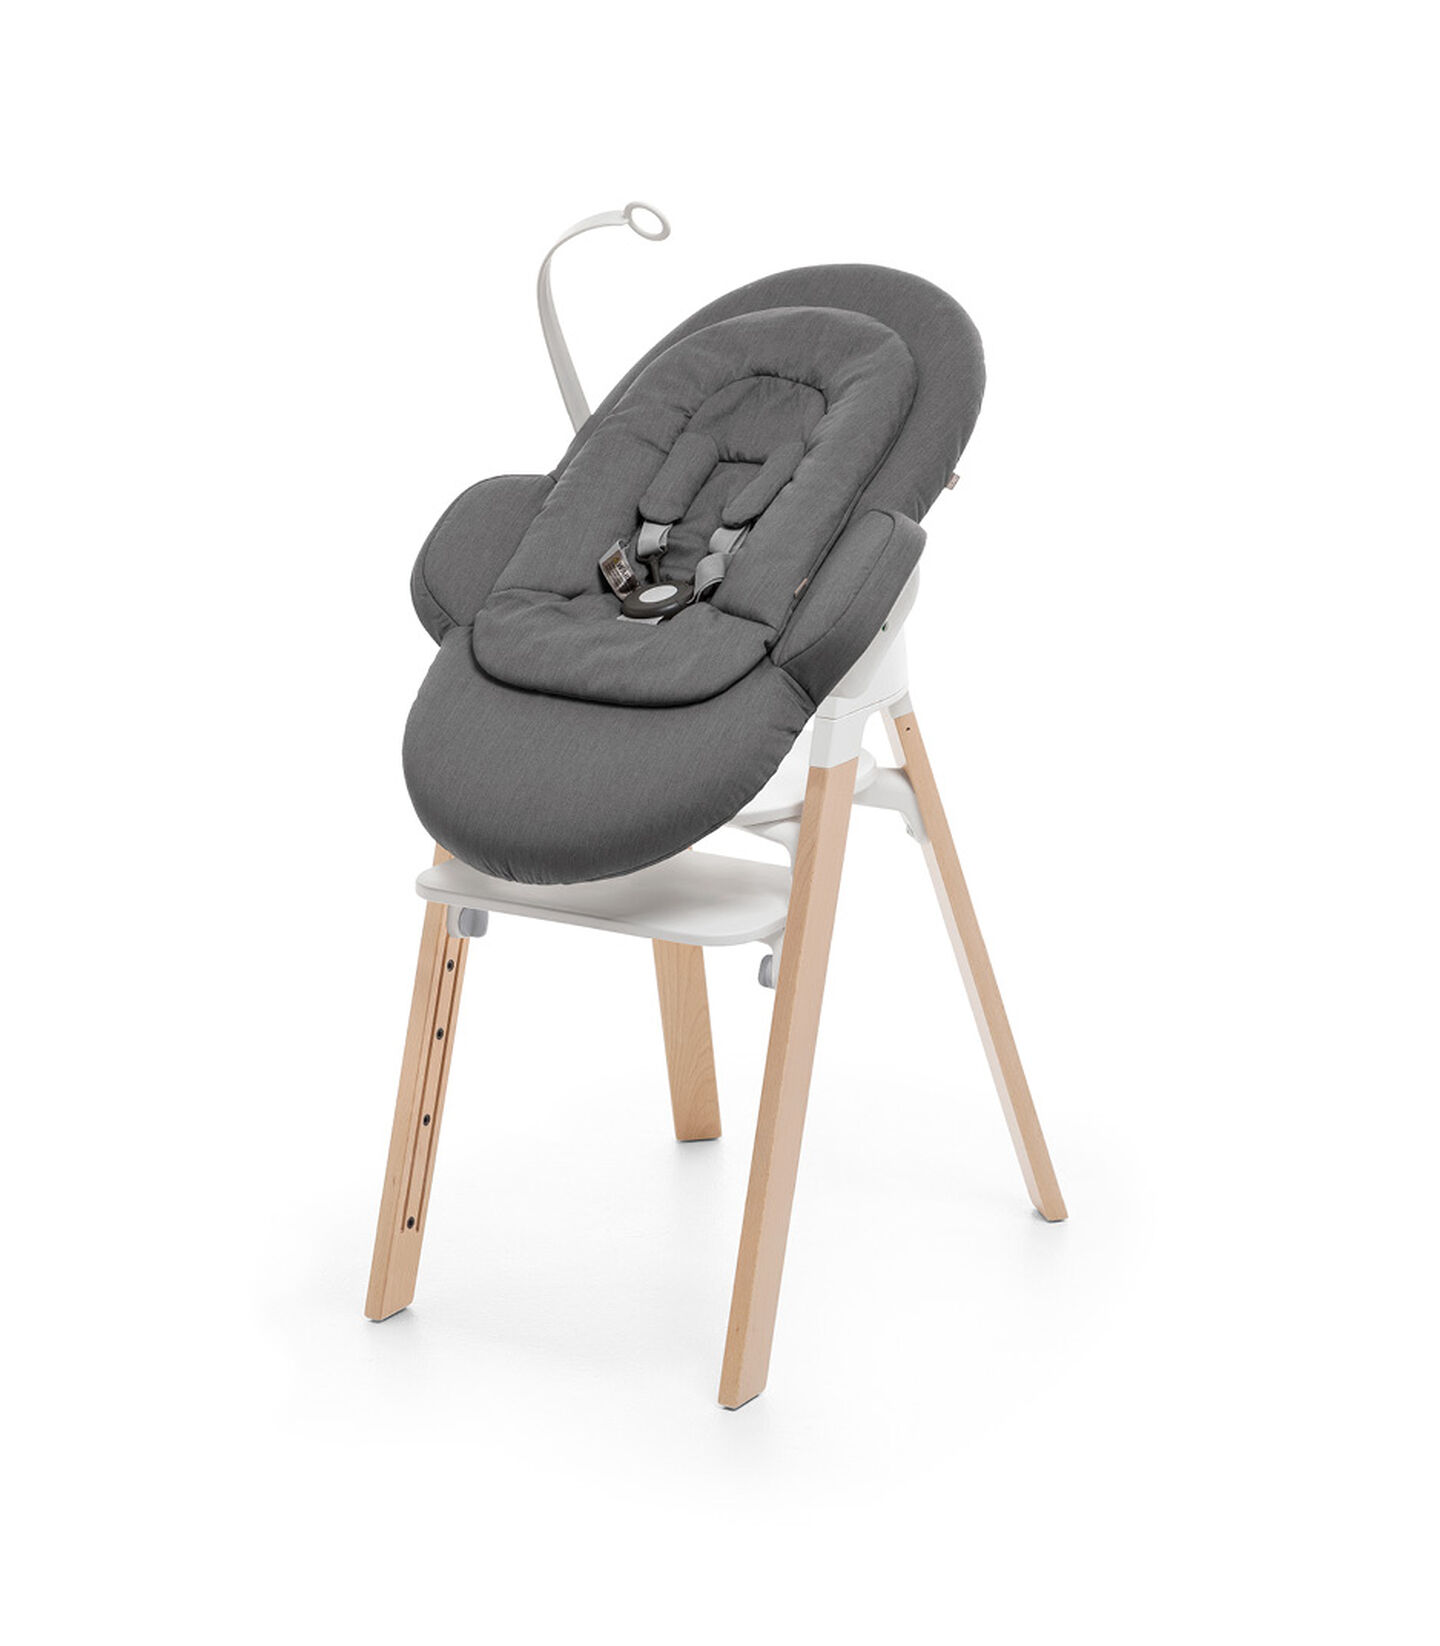 "Stokke® Steps"" Chair, Beech Natural, with Newborn Set Deep Grey. view 2"